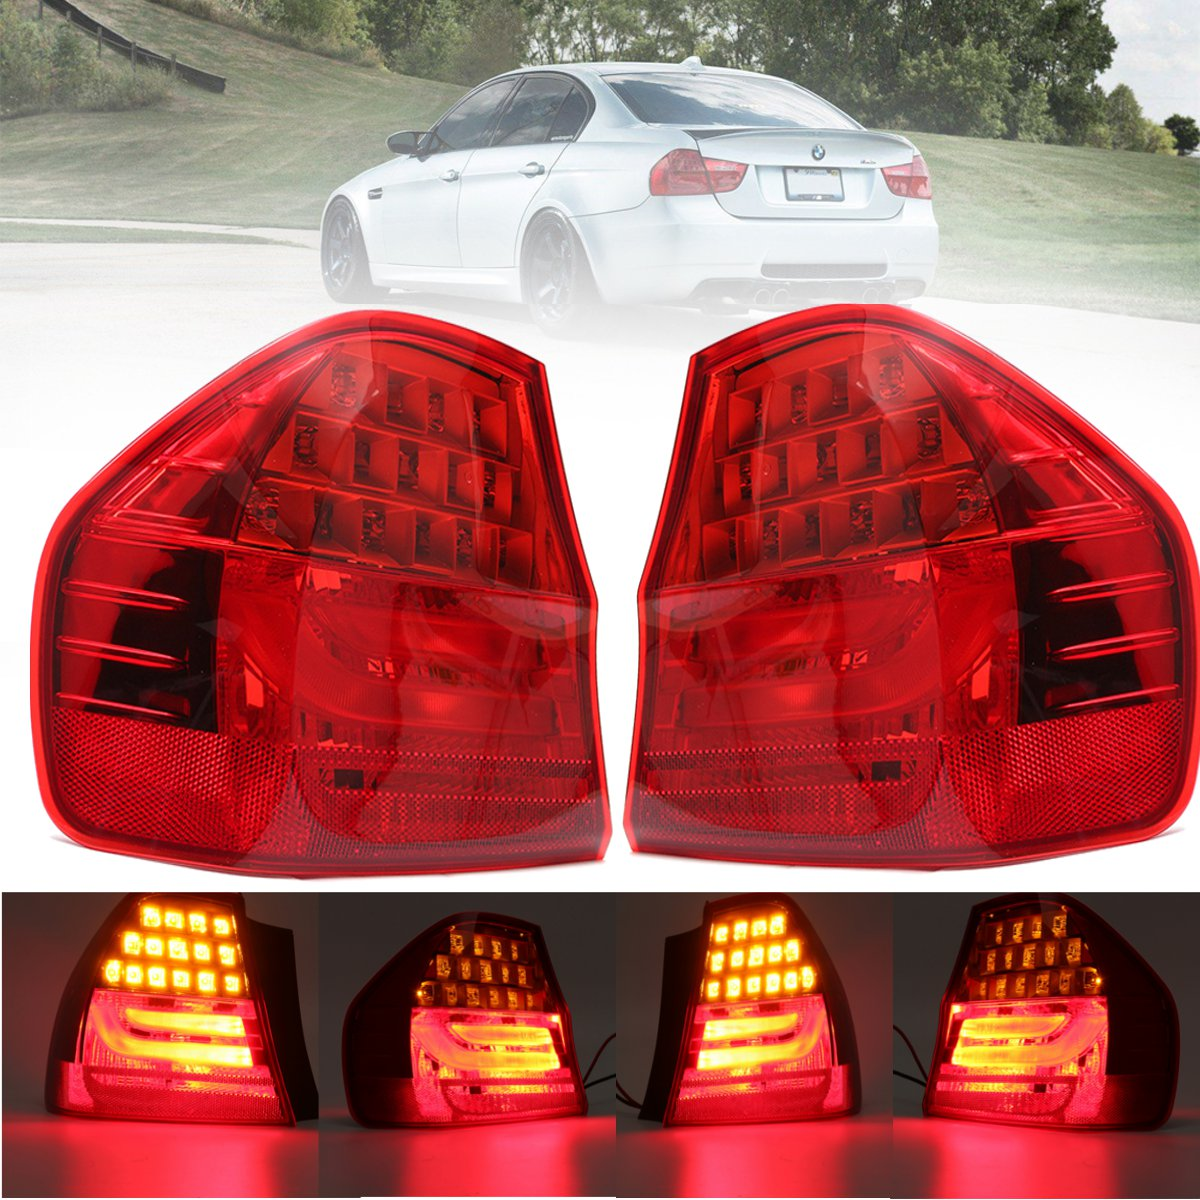 1X Car Rear Tail Lamp Light Led Light Left / Right Side For BMW 3 SERIES E90 2008 2009 2010 20111X Car Rear Tail Lamp Light Led Light Left / Right Side For BMW 3 SERIES E90 2008 2009 2010 2011